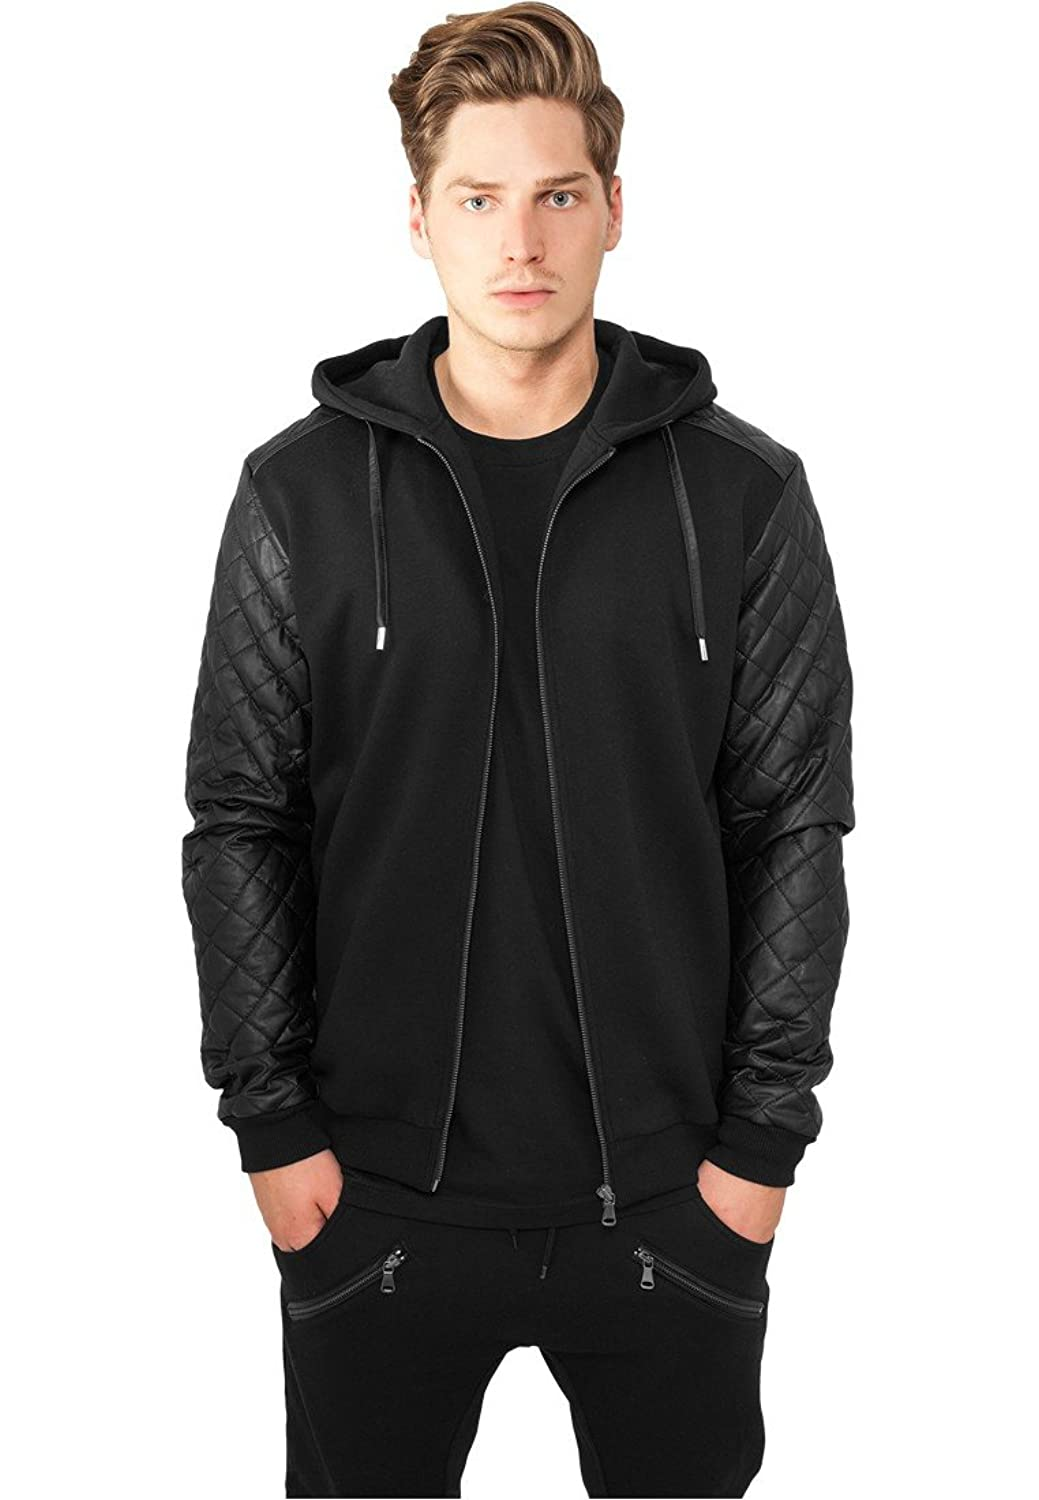 Diamond Leather Imitation Sleeve Zip Hoody jetzt kaufen